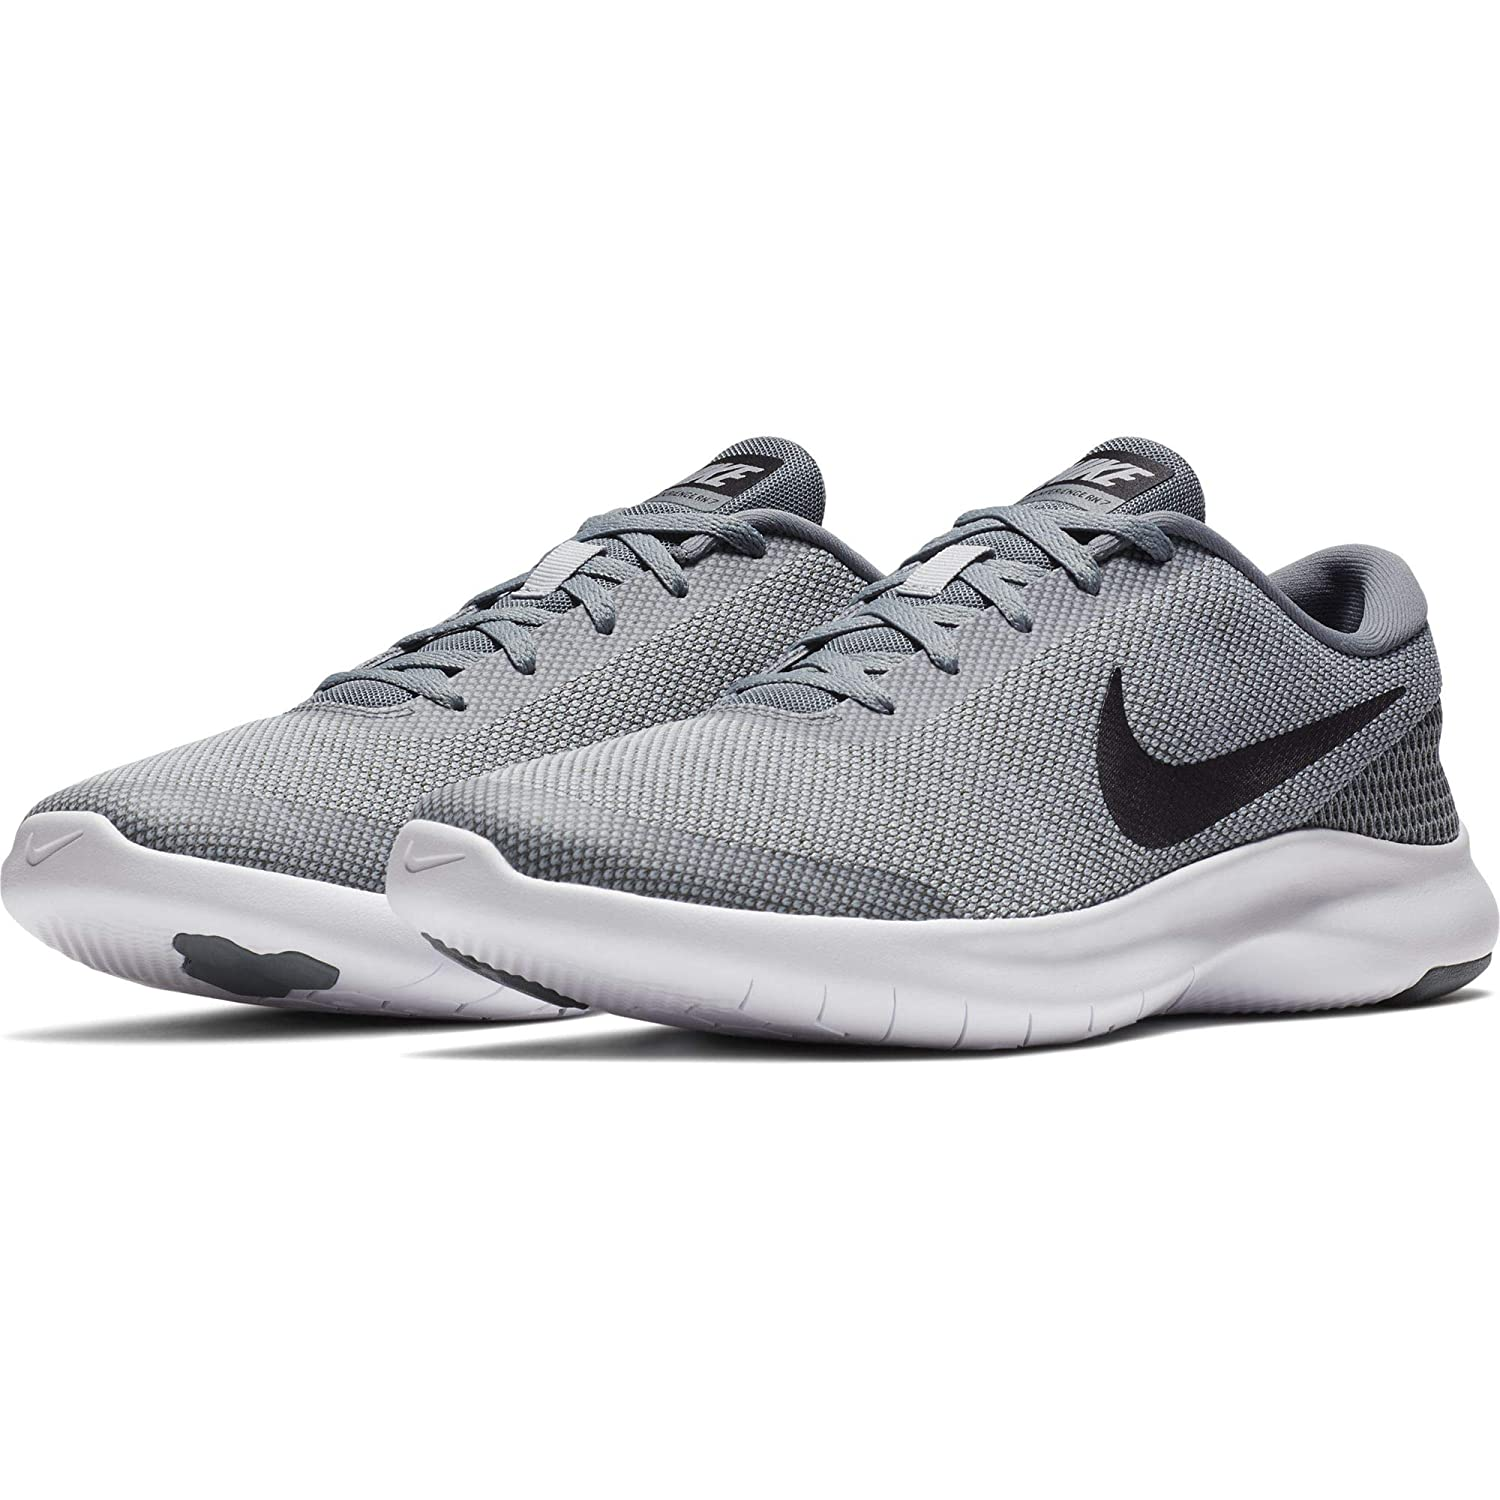 86129083bfb9 Nike Men s Grey Mesh Experience 7 Running Shoes - 8 UK  Buy Online at Low  Prices in India - Amazon.in